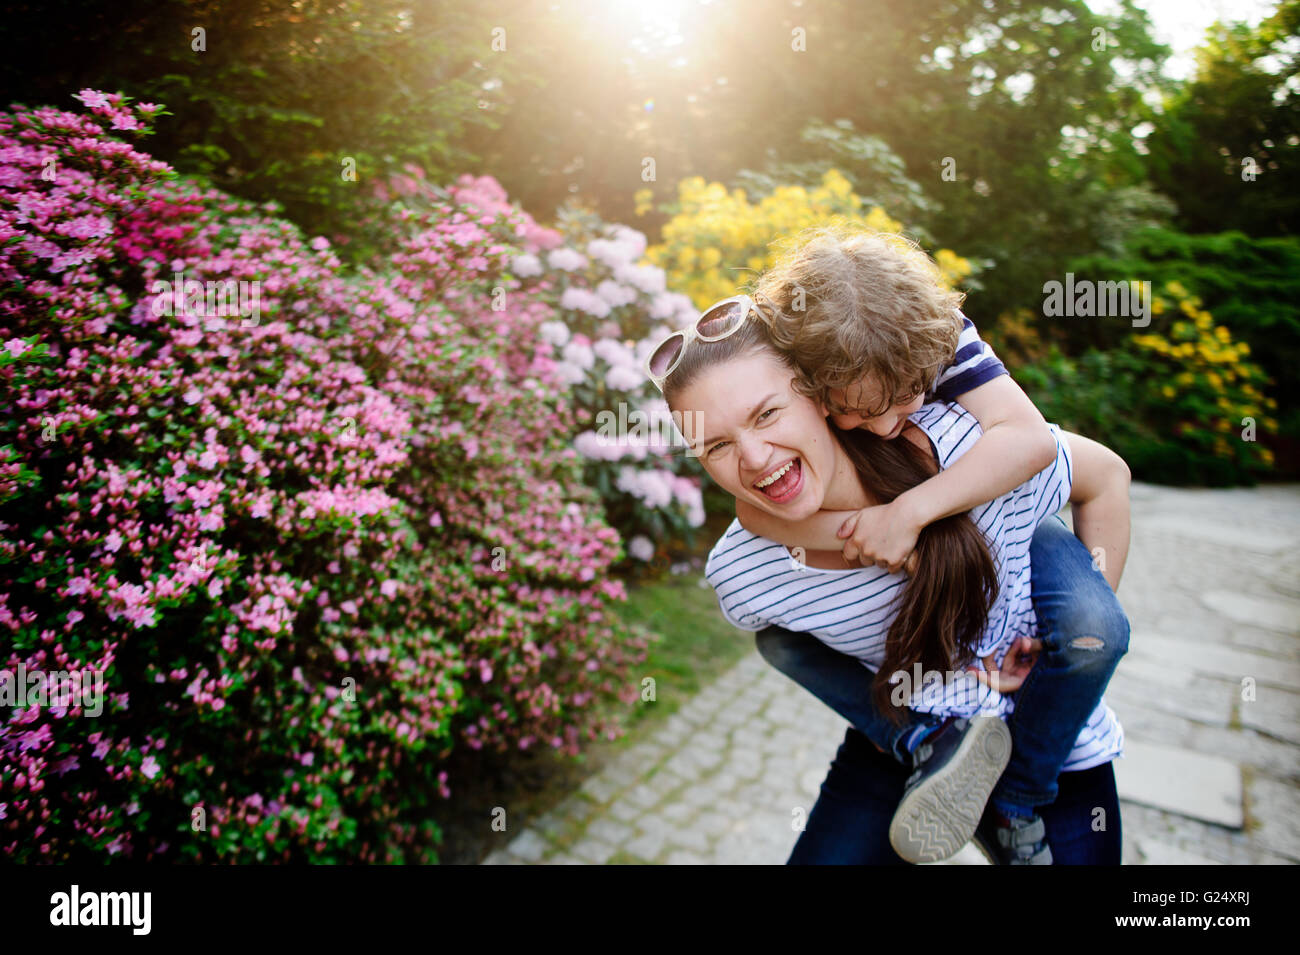 Woman and boy in the park Photo Stock